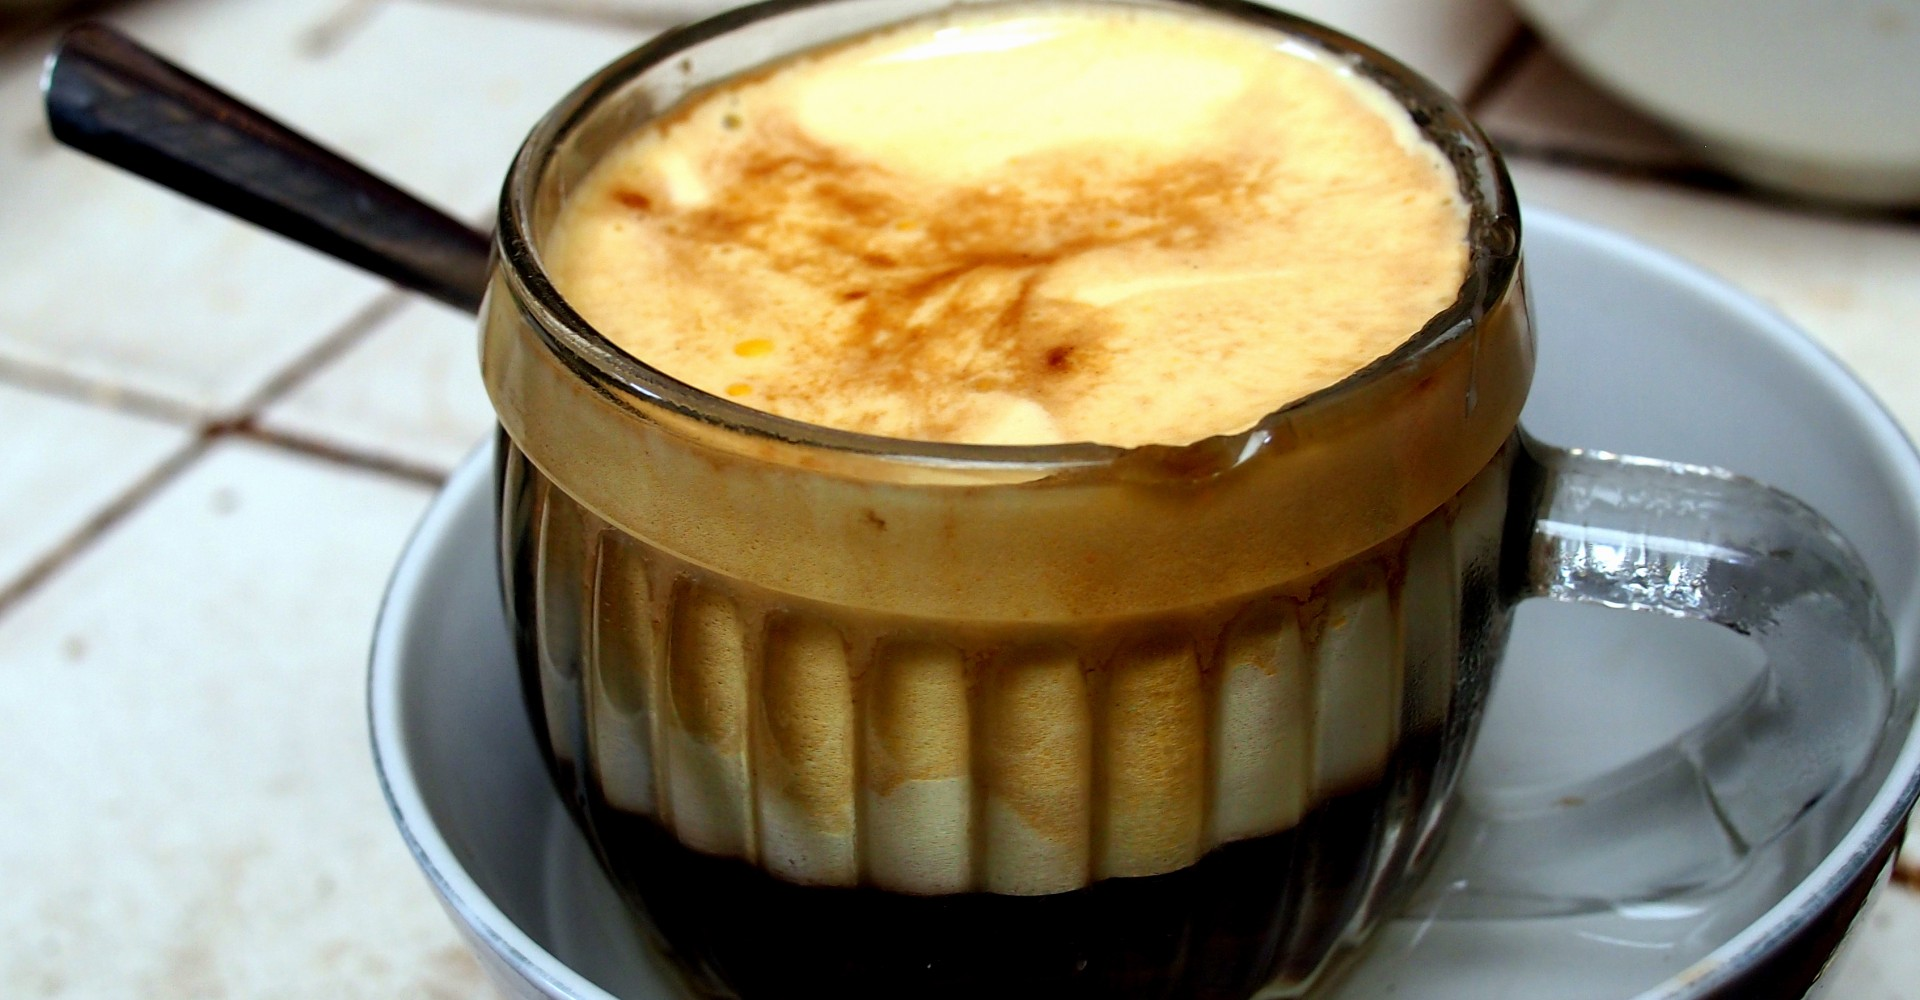 Recipe of the Month: Vietnamese Egg Coffee